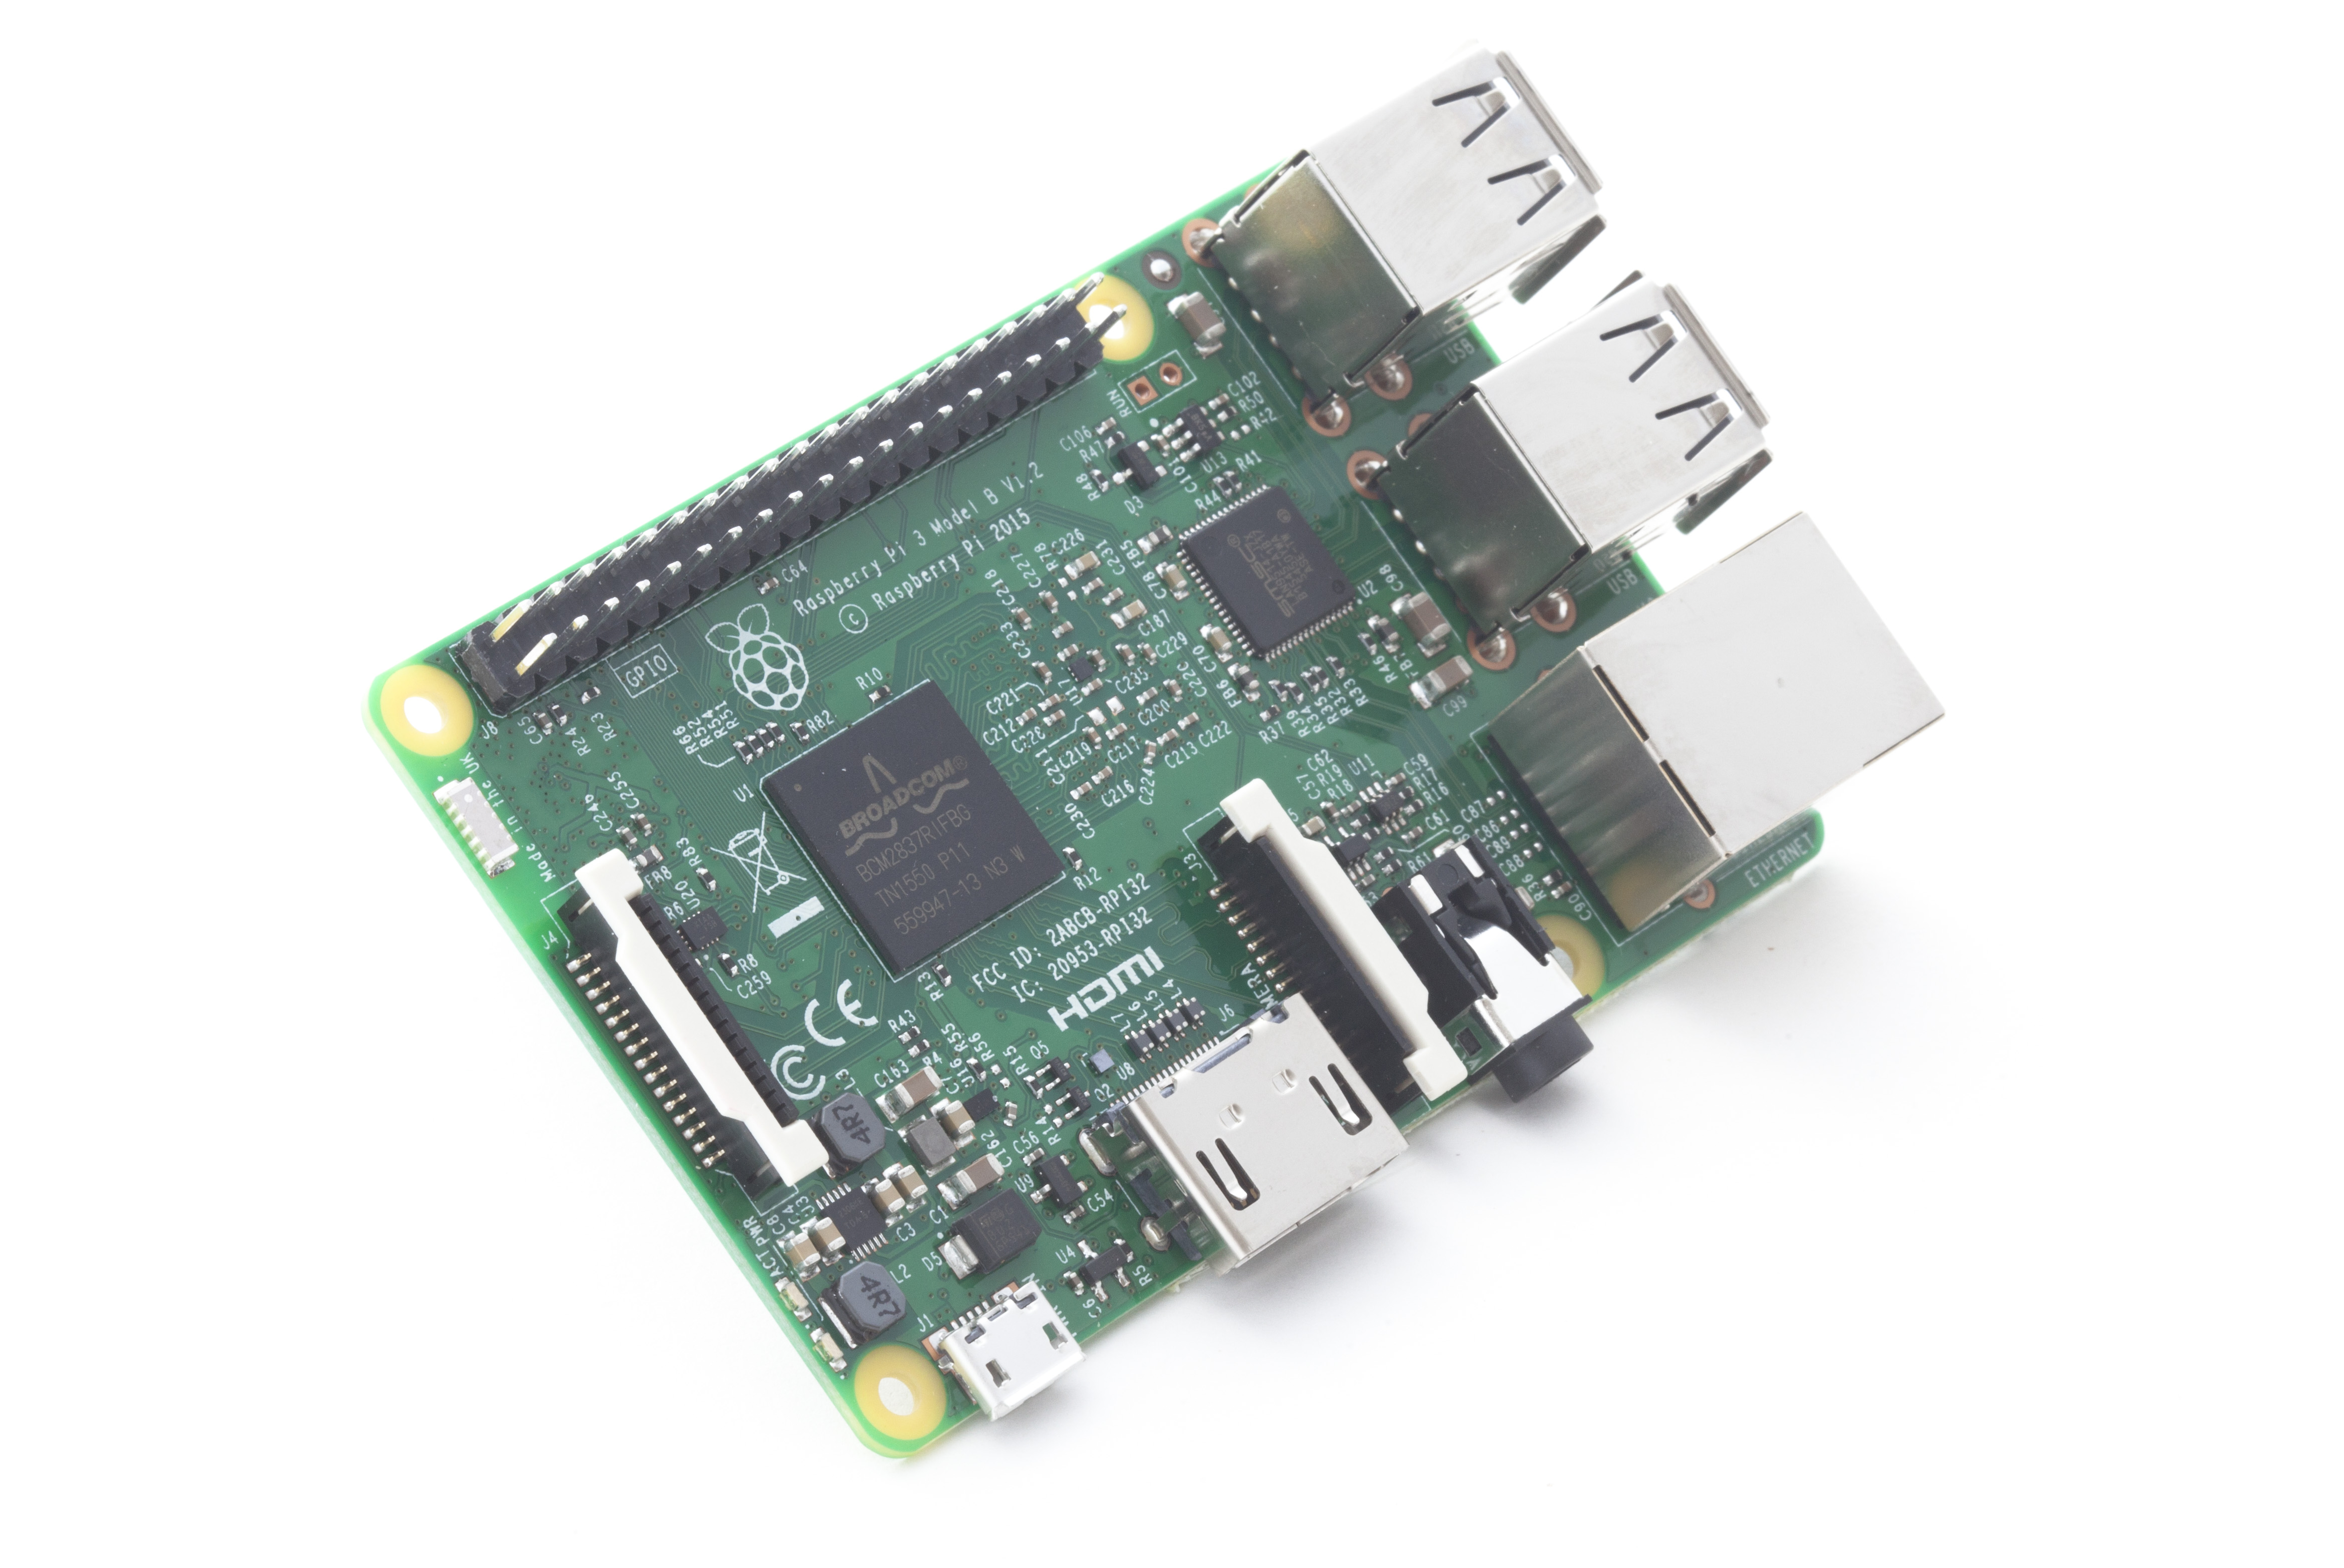 Raspberry Pi 3 on sale now at $35